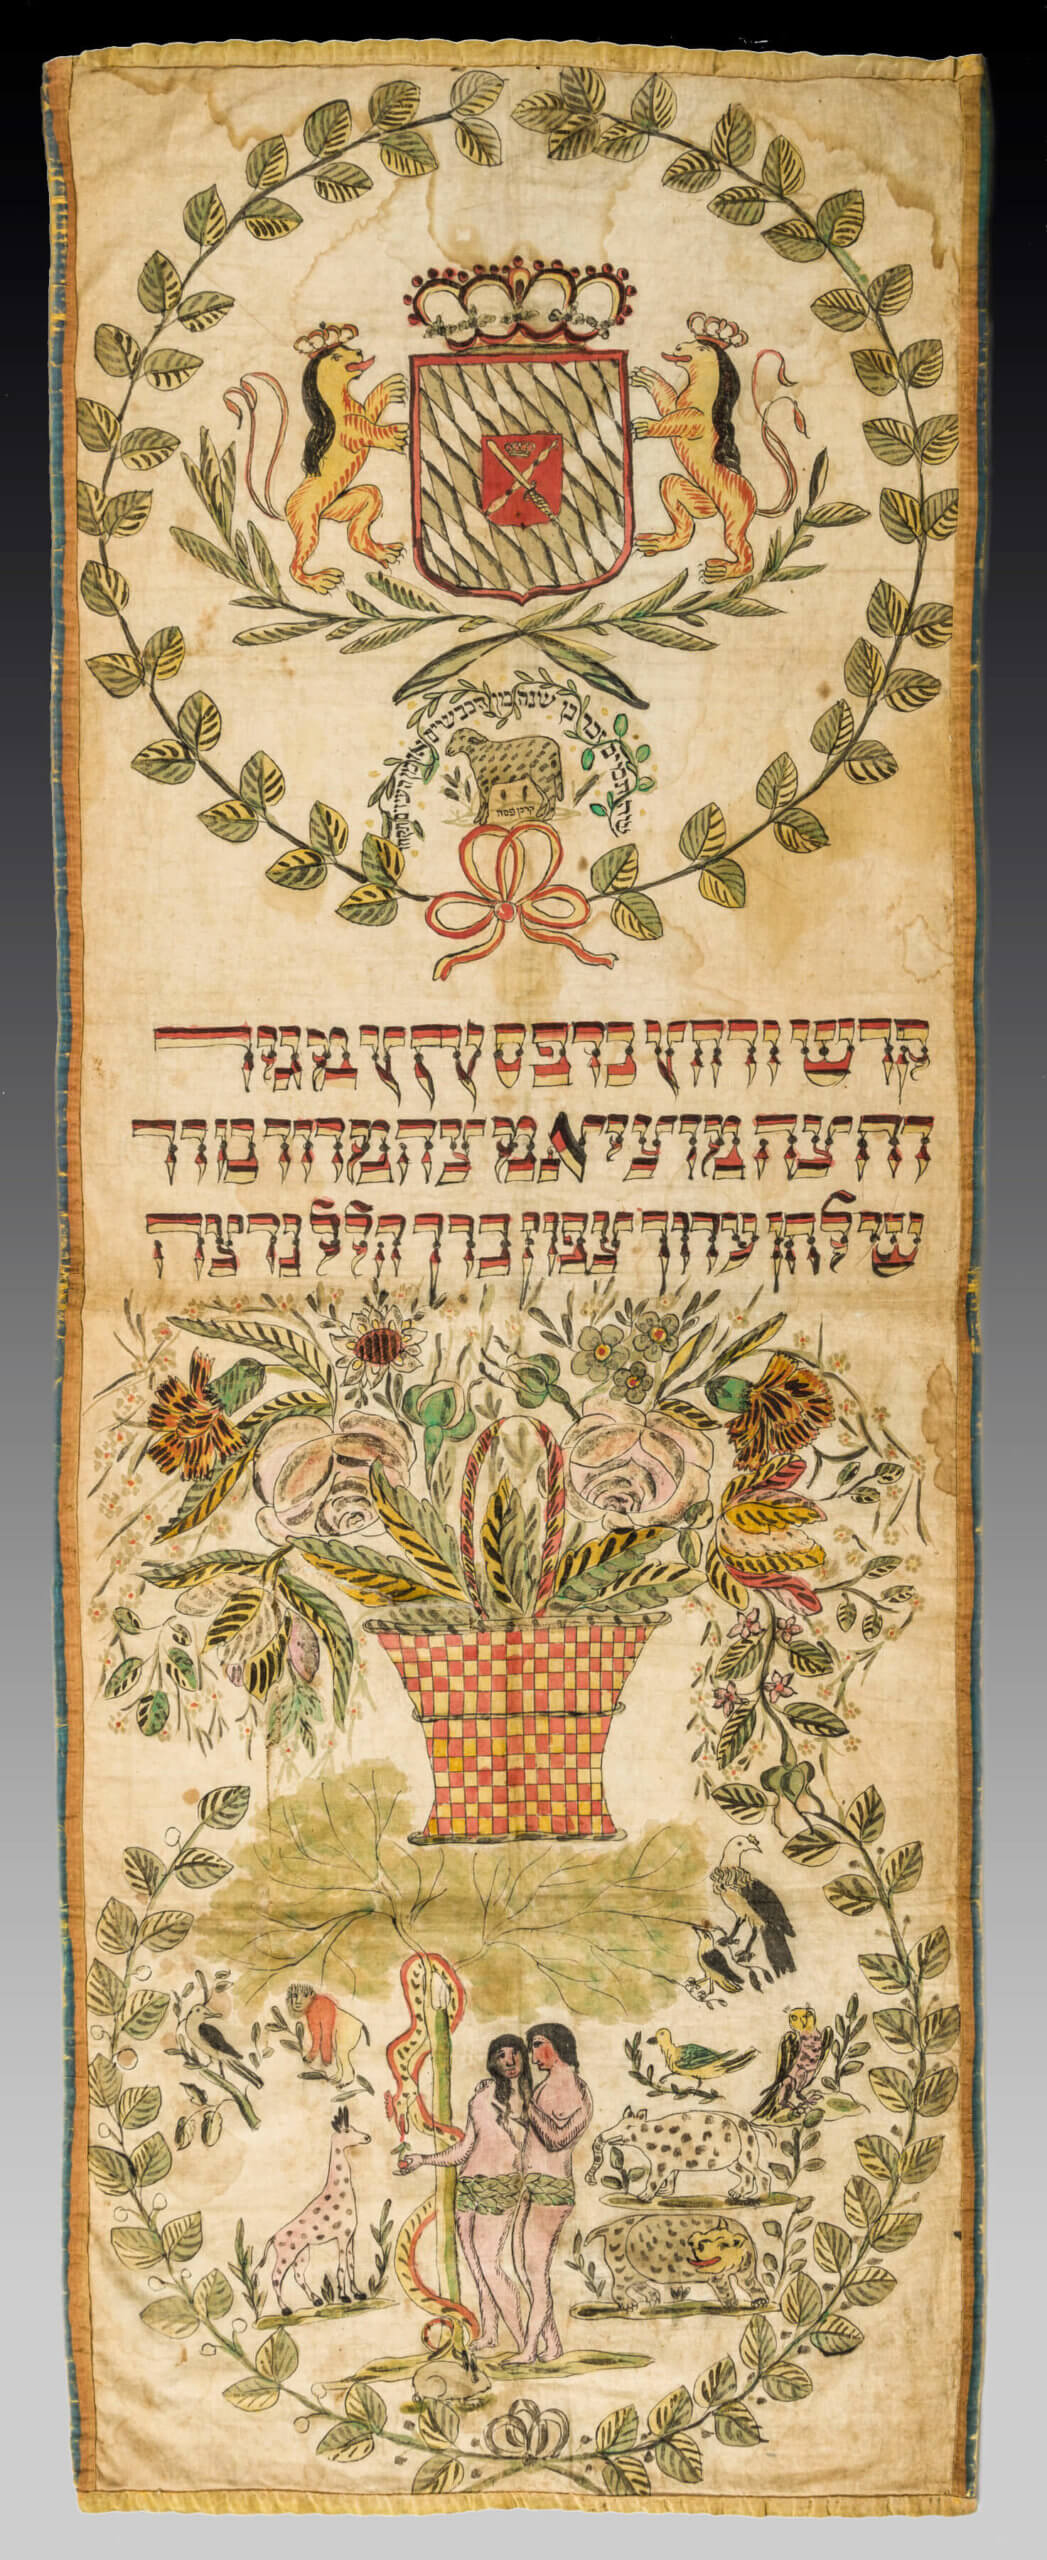 028. AN EARLY AND RARE PASSOVER BANNER